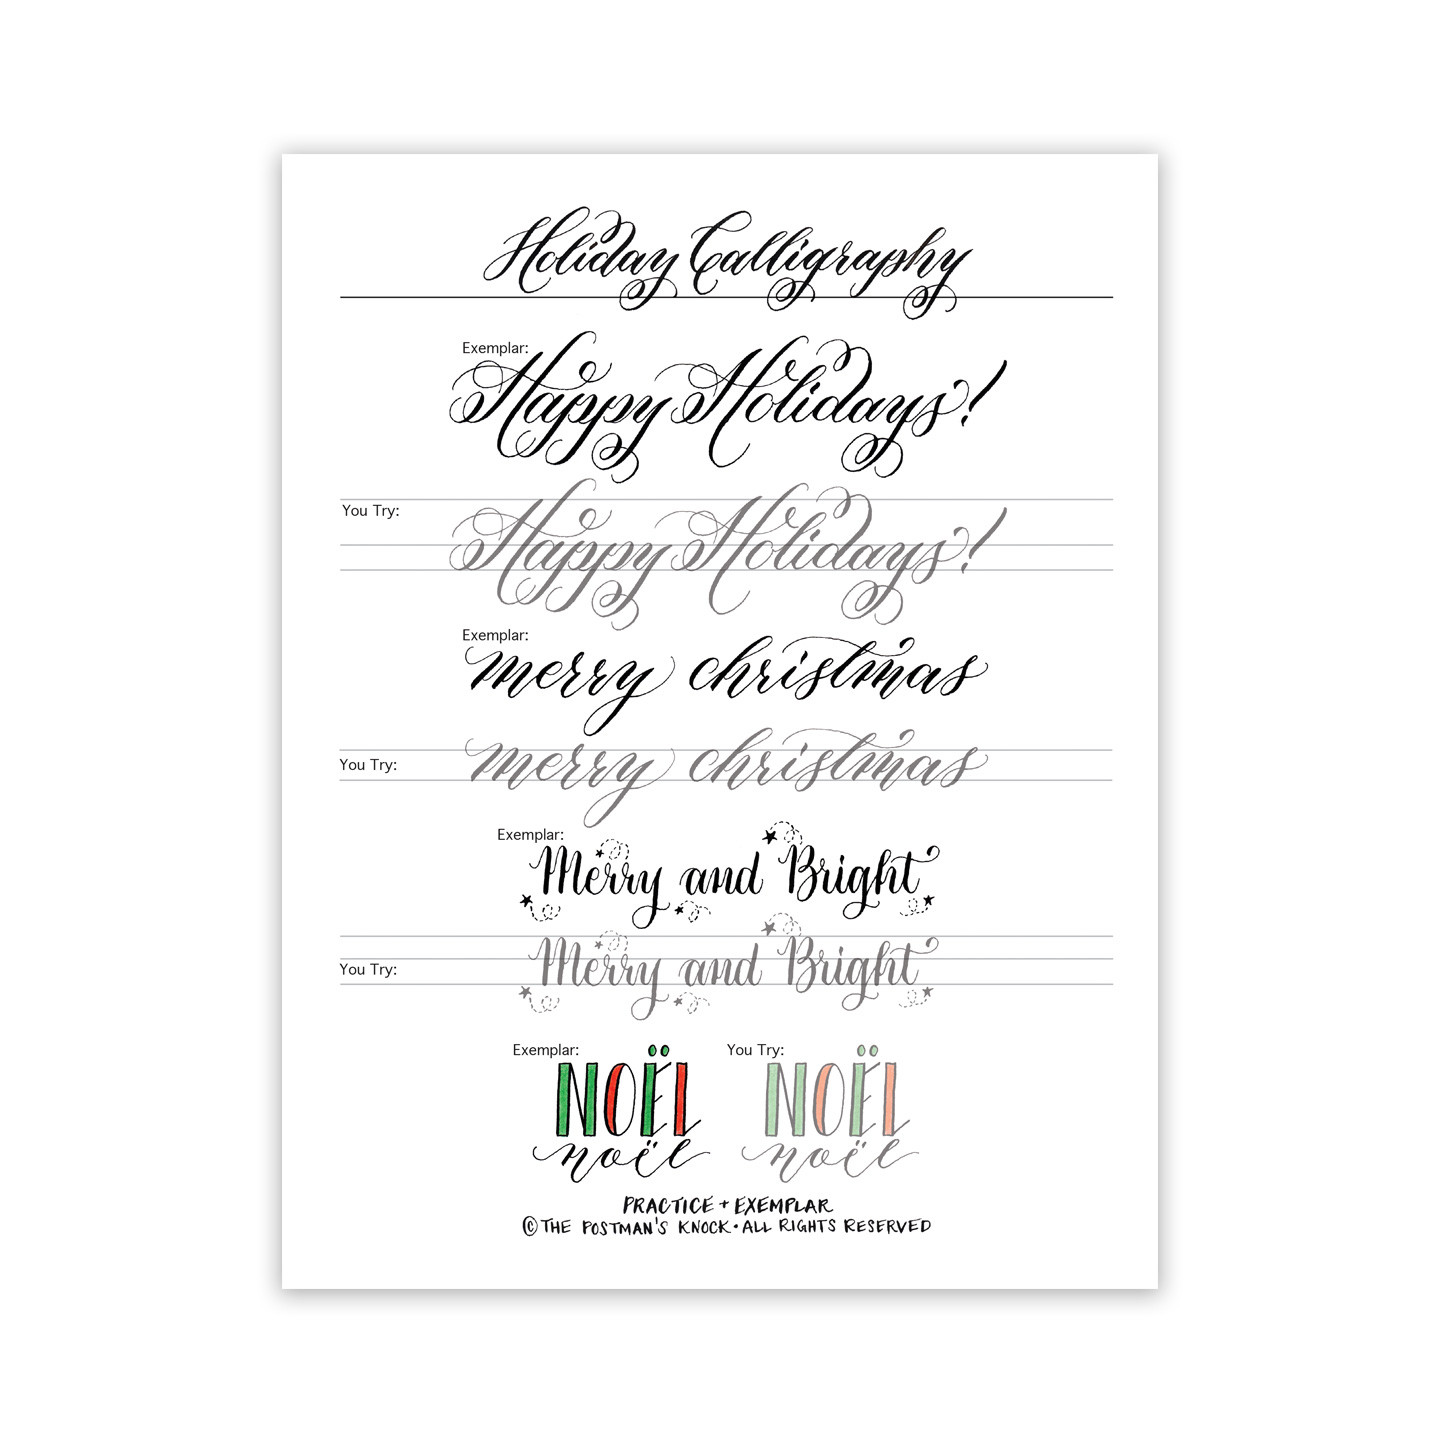 Free Calligraphy Worksheets Printable Calligraphy Worksheets Dip Pen